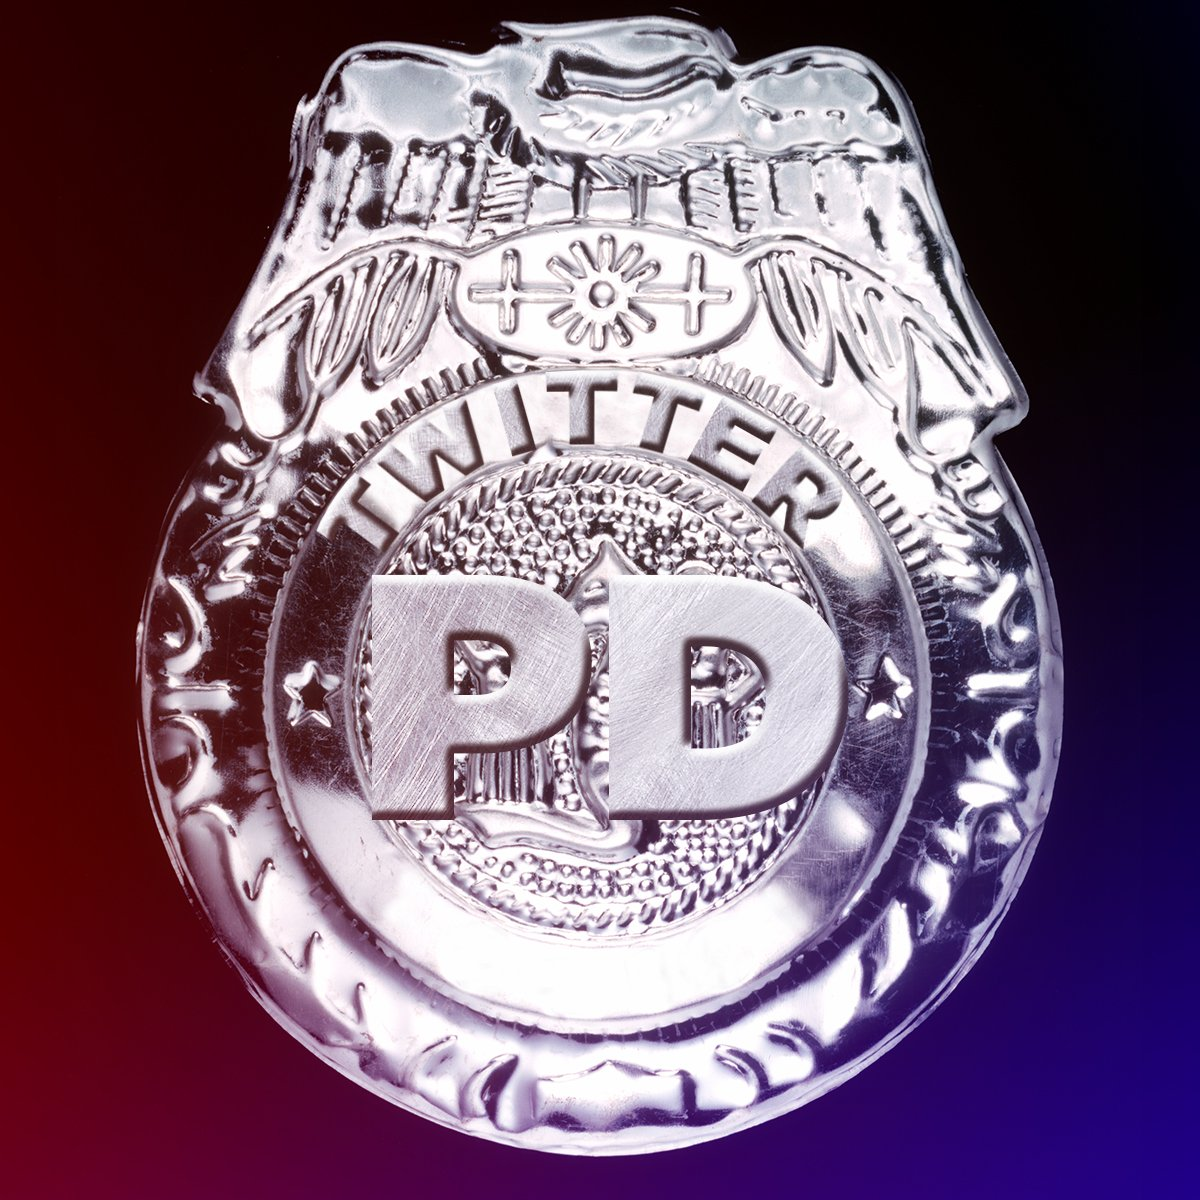 Halfway through #LivePD. #TwitterPD, RT if you're buckled in and ready...